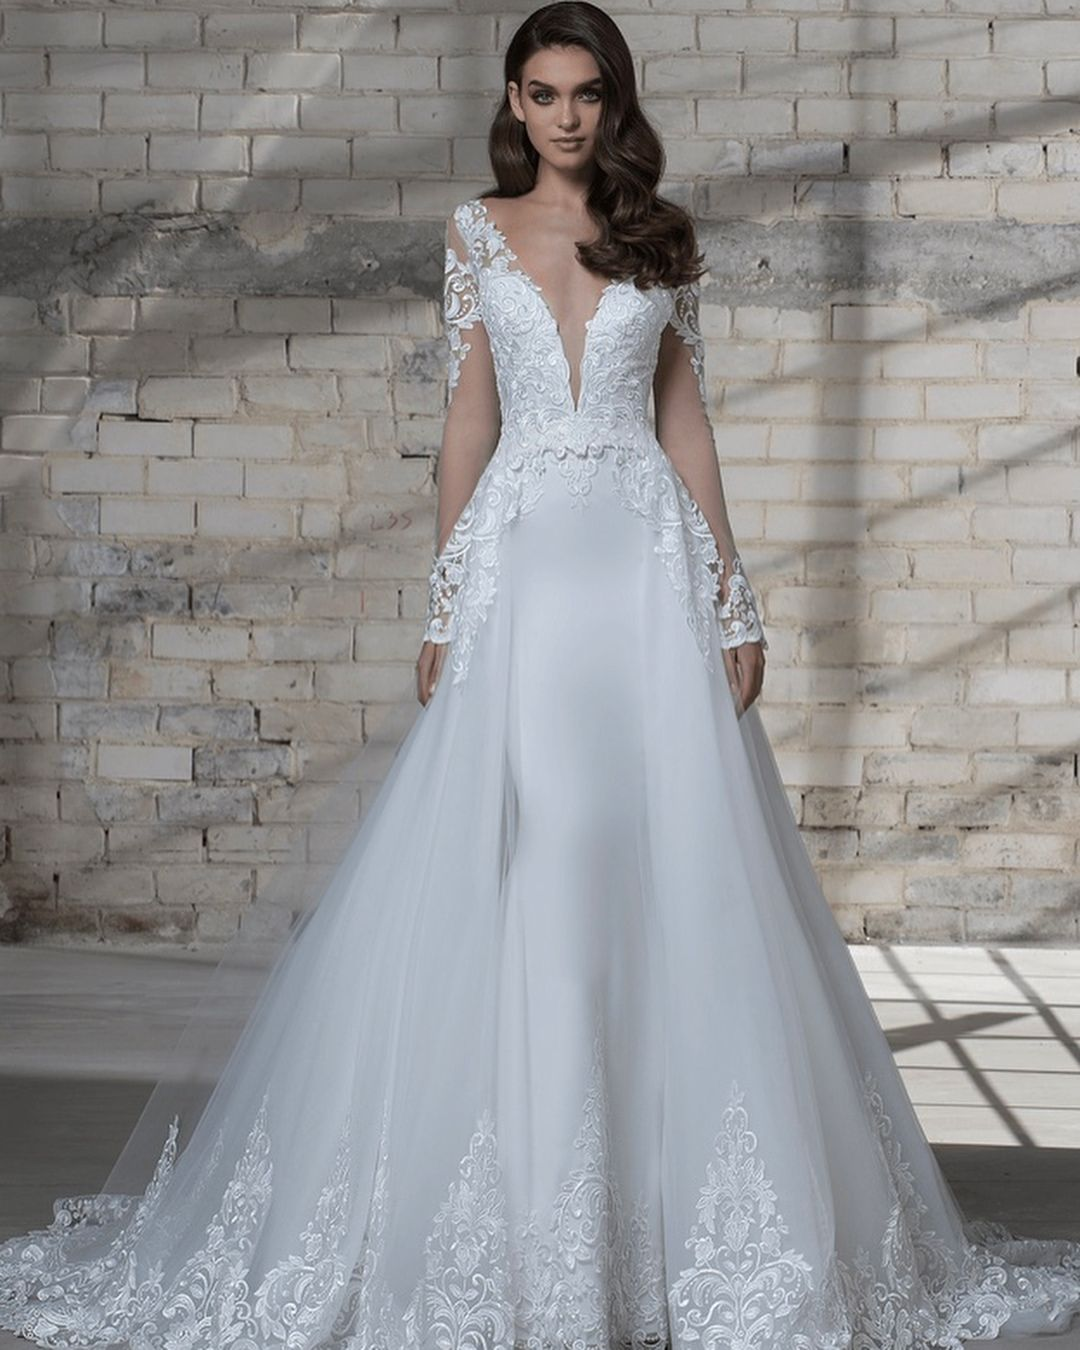 Pnina Tornai 2019 Wedding Dresses: This 2019 #LOVEbyPninaTornai Gown With A Detachable Skirt